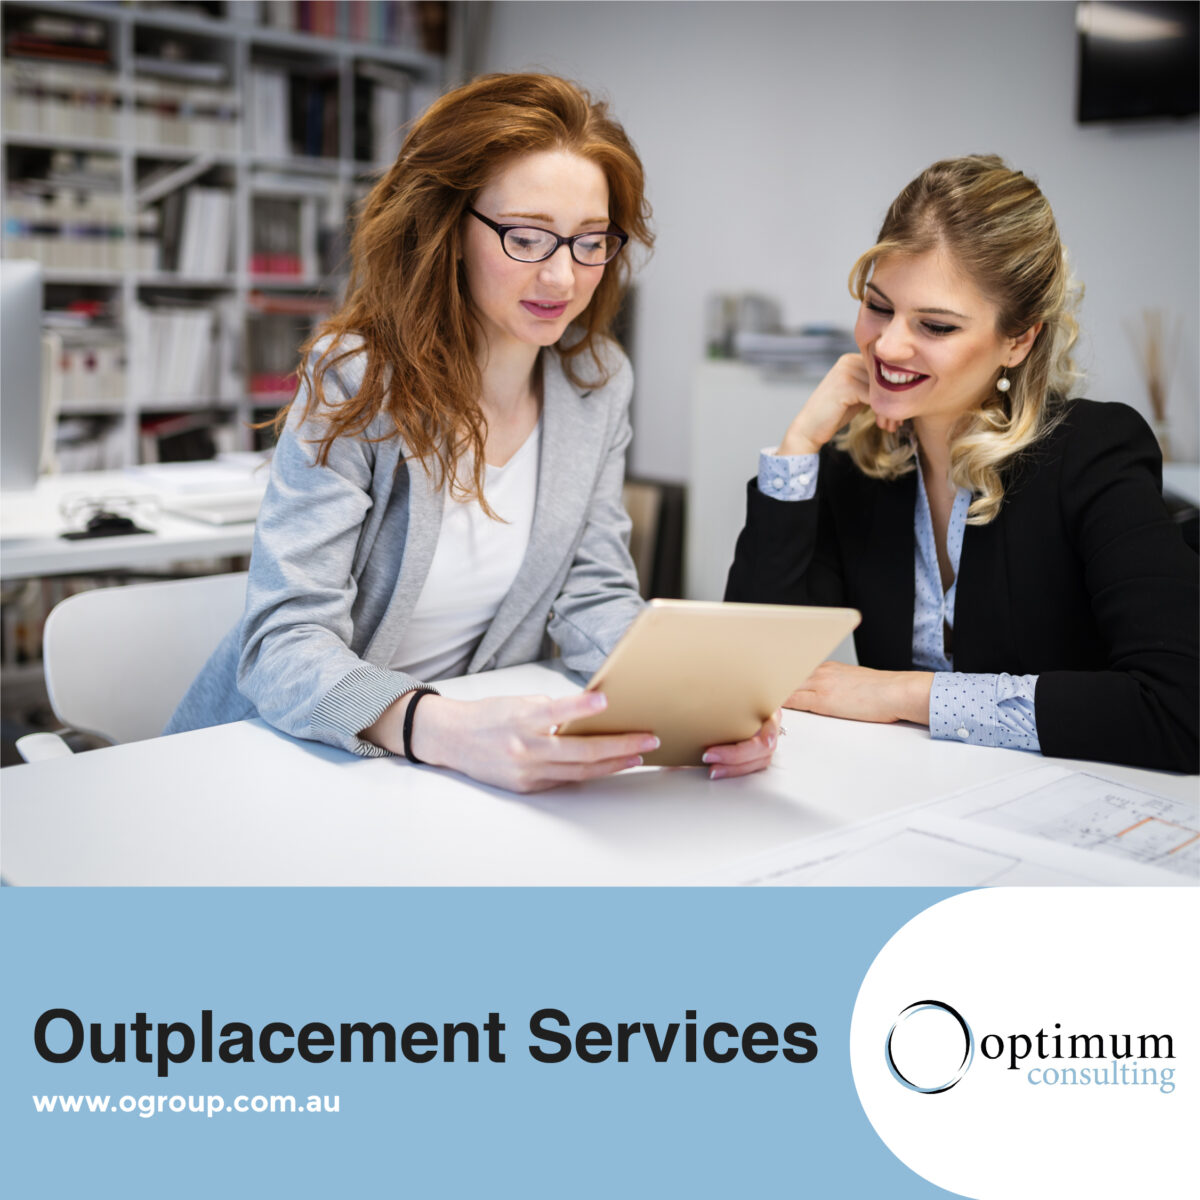 services in Brisbane outplacement